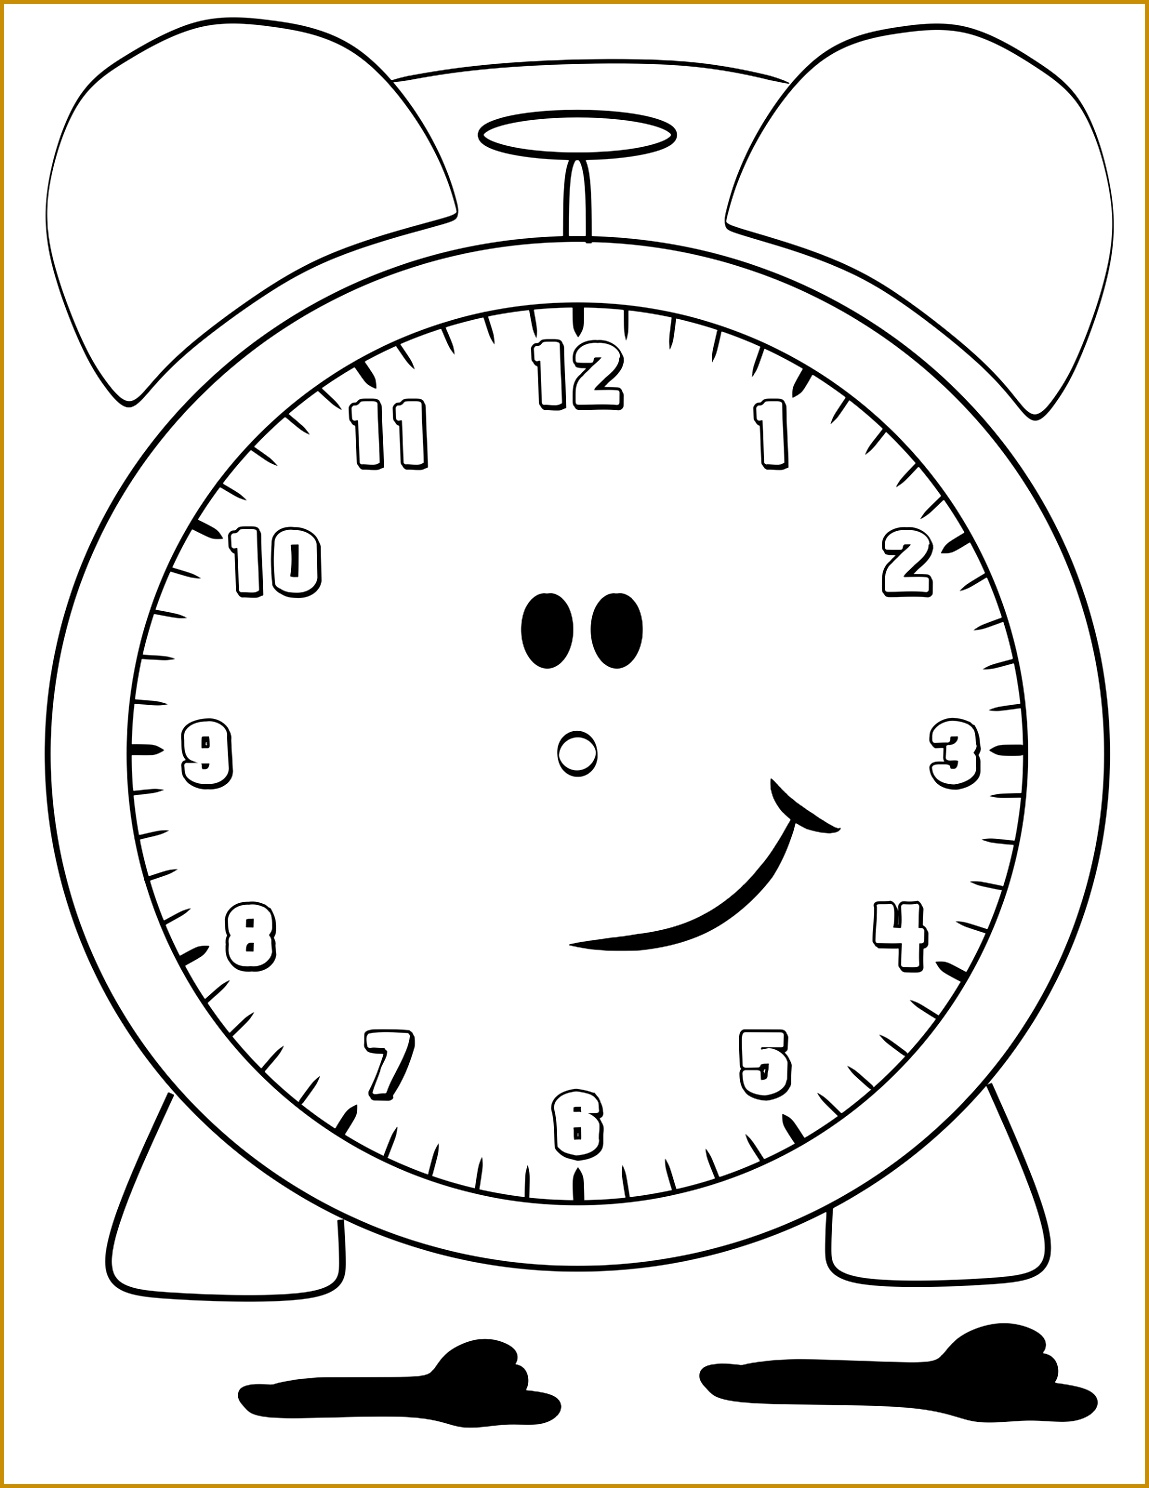 Blank Clock Worksheets 77599 Blank Clock Faces for Kids Rel³gio Pinterest